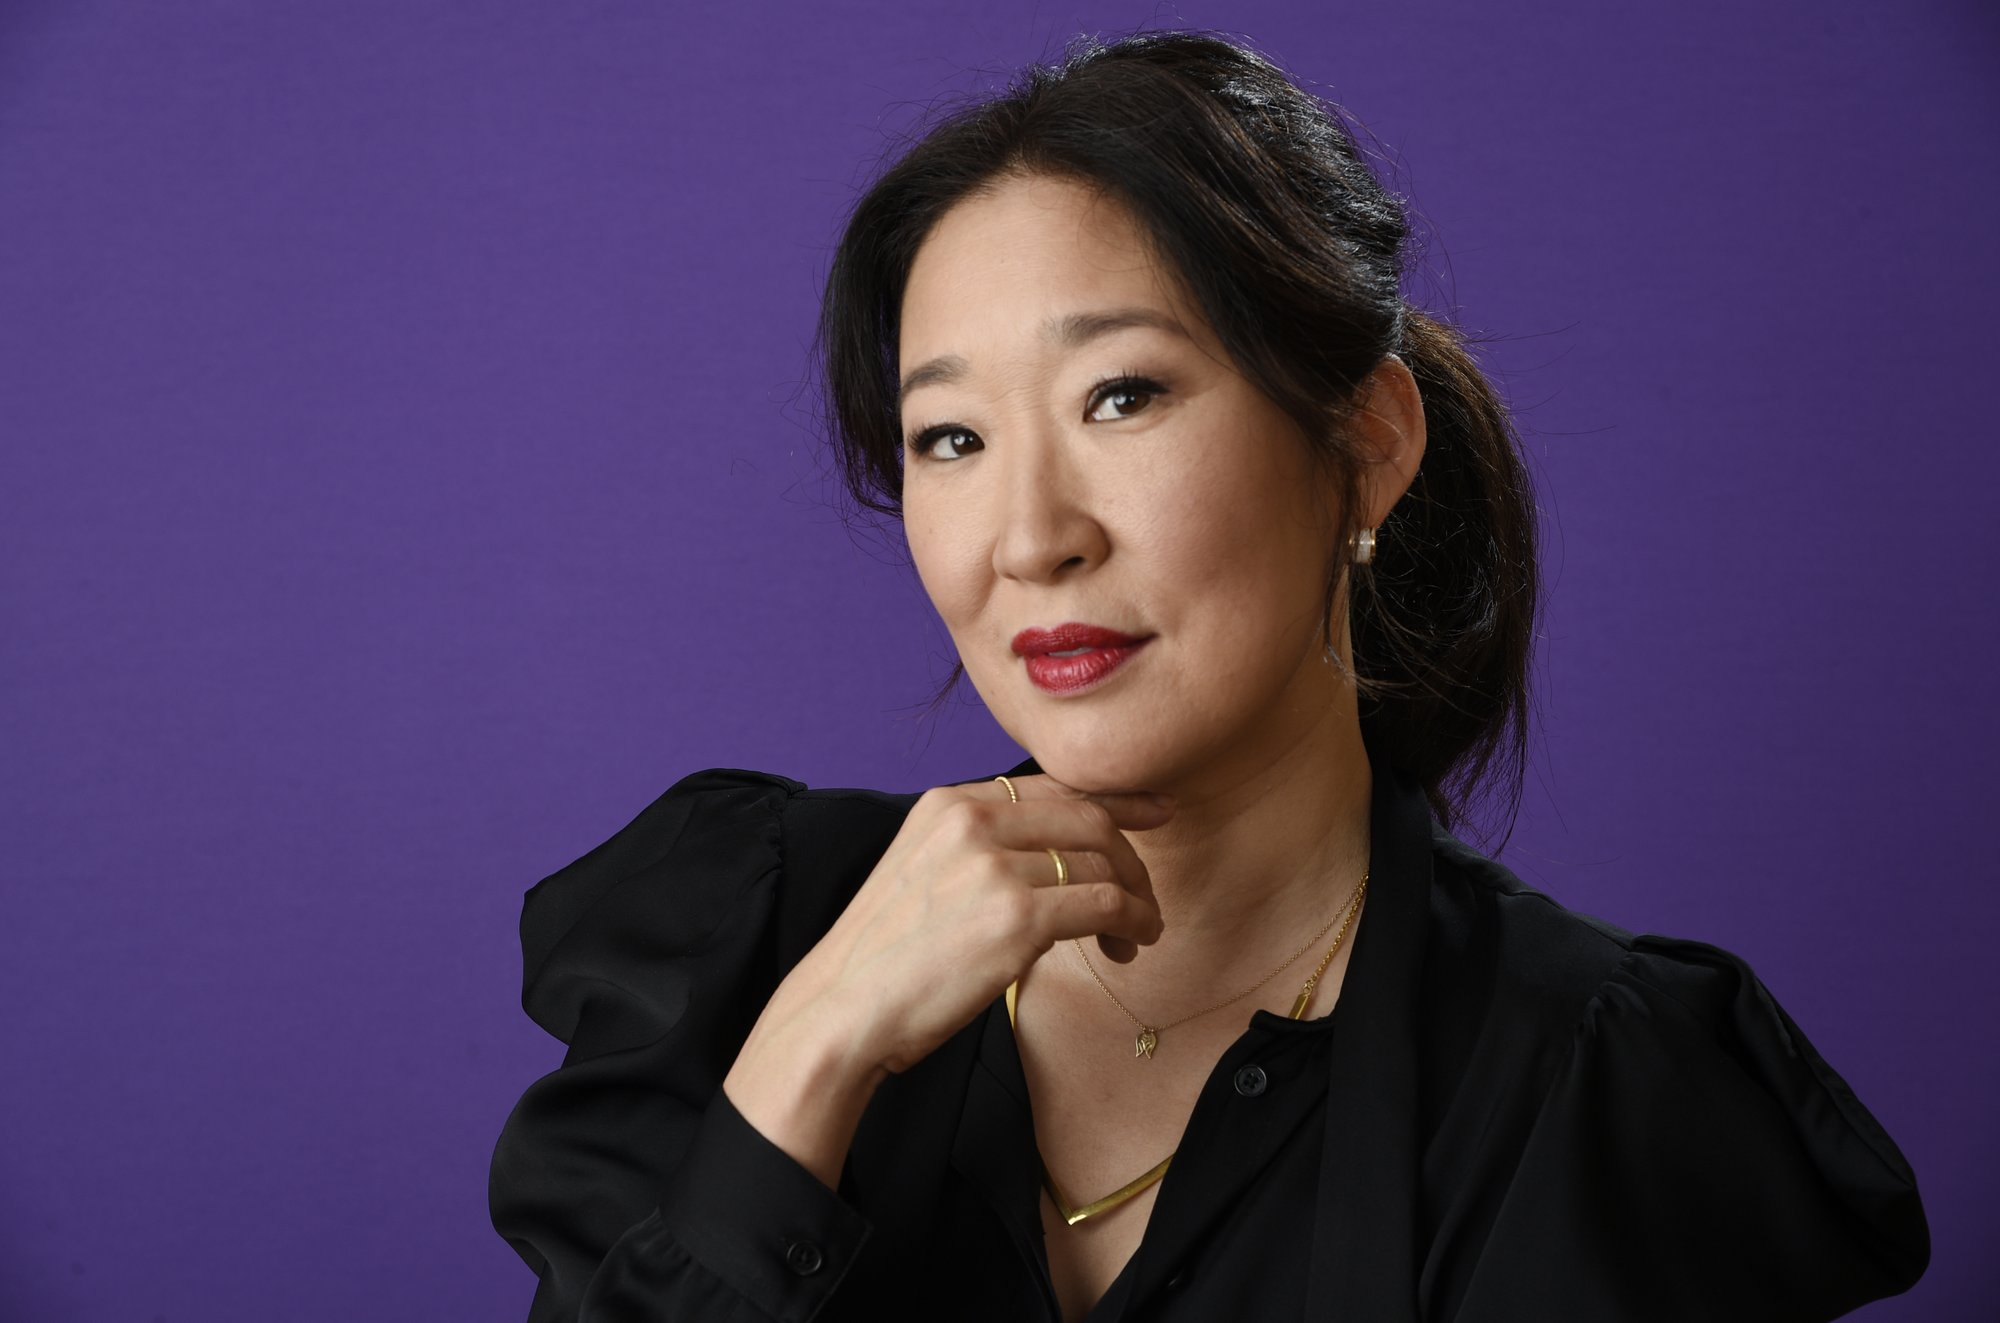 FILE - In this Friday, Jan. 12, 2018 file photo, Sandra Oh poses for a portrait in Pasadena, California. Photo: AP